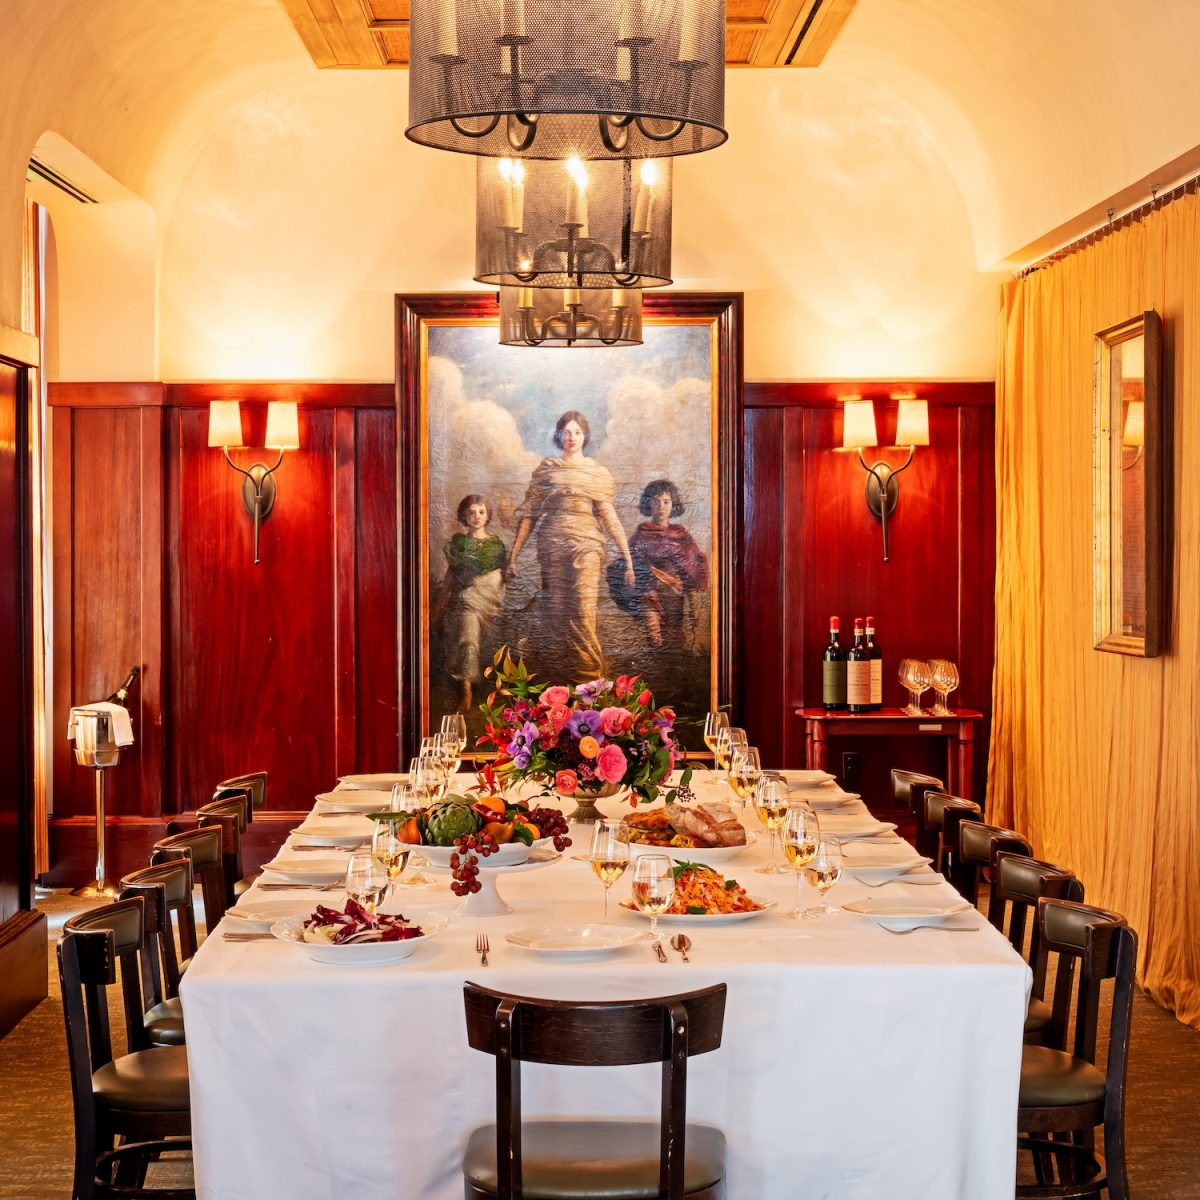 Large table set with white tablecloth, glasses of wine, and platters of food in wood lined private dining room with chandeliers and large painting